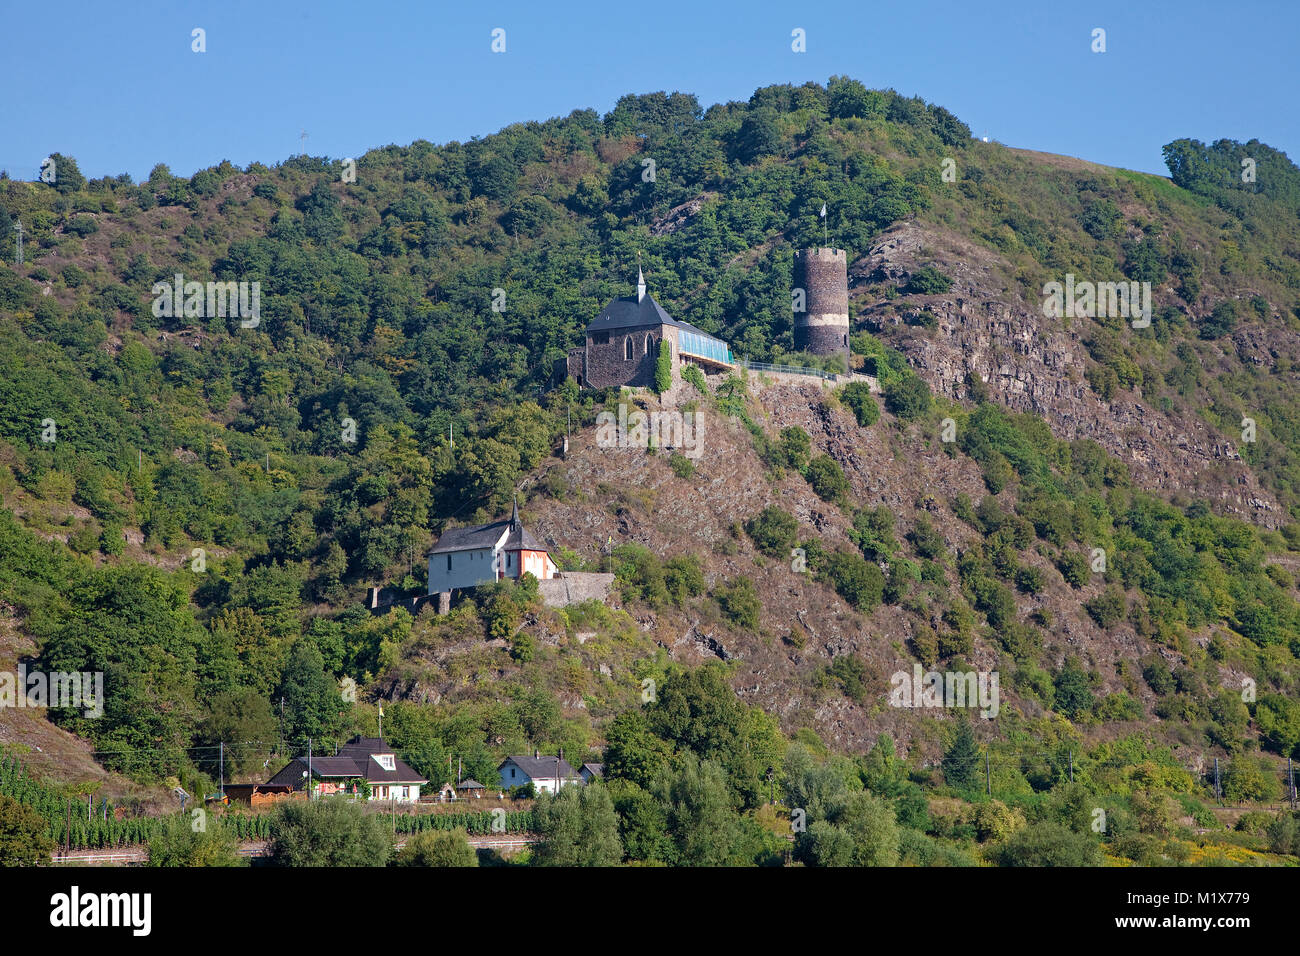 Spur castle Bischofstein and chapel Saint Stefphan, Burgen, Moselle river, Rhineland-Palatinate, Germany, Europe - Stock Image